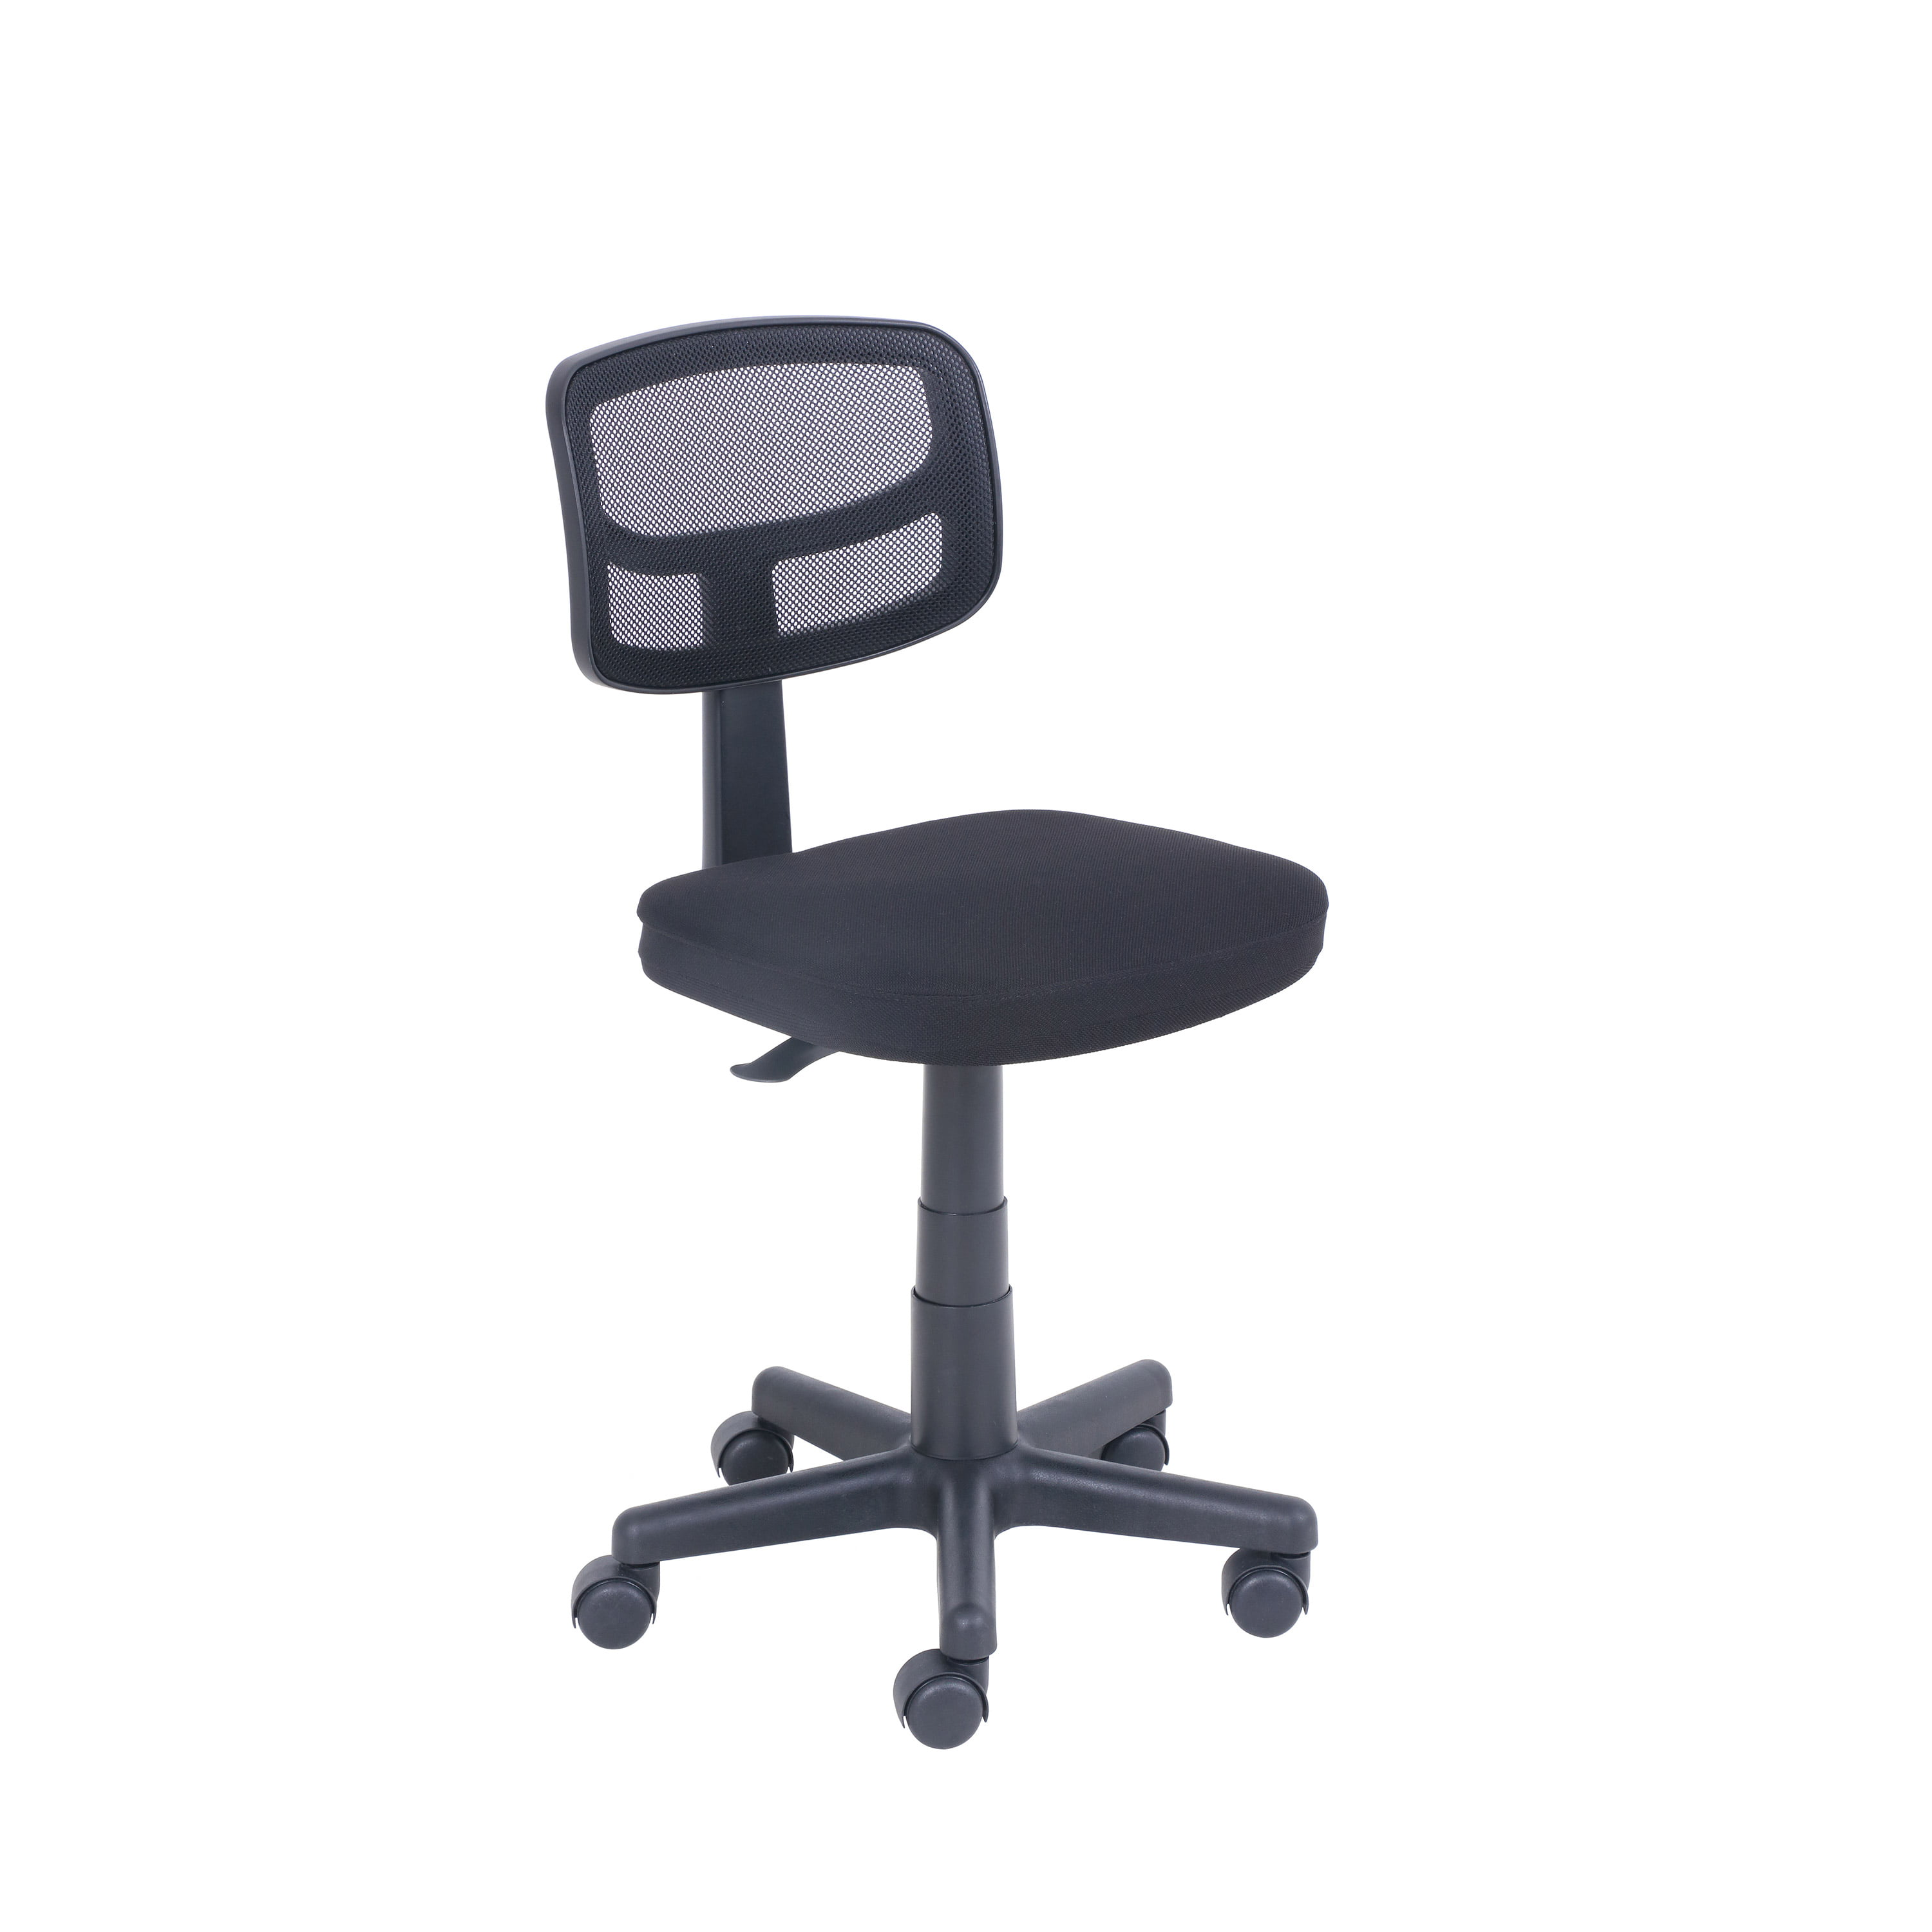 MyOfficeInnovations Mesh and Fabric Task Chair Black 53249 24328573